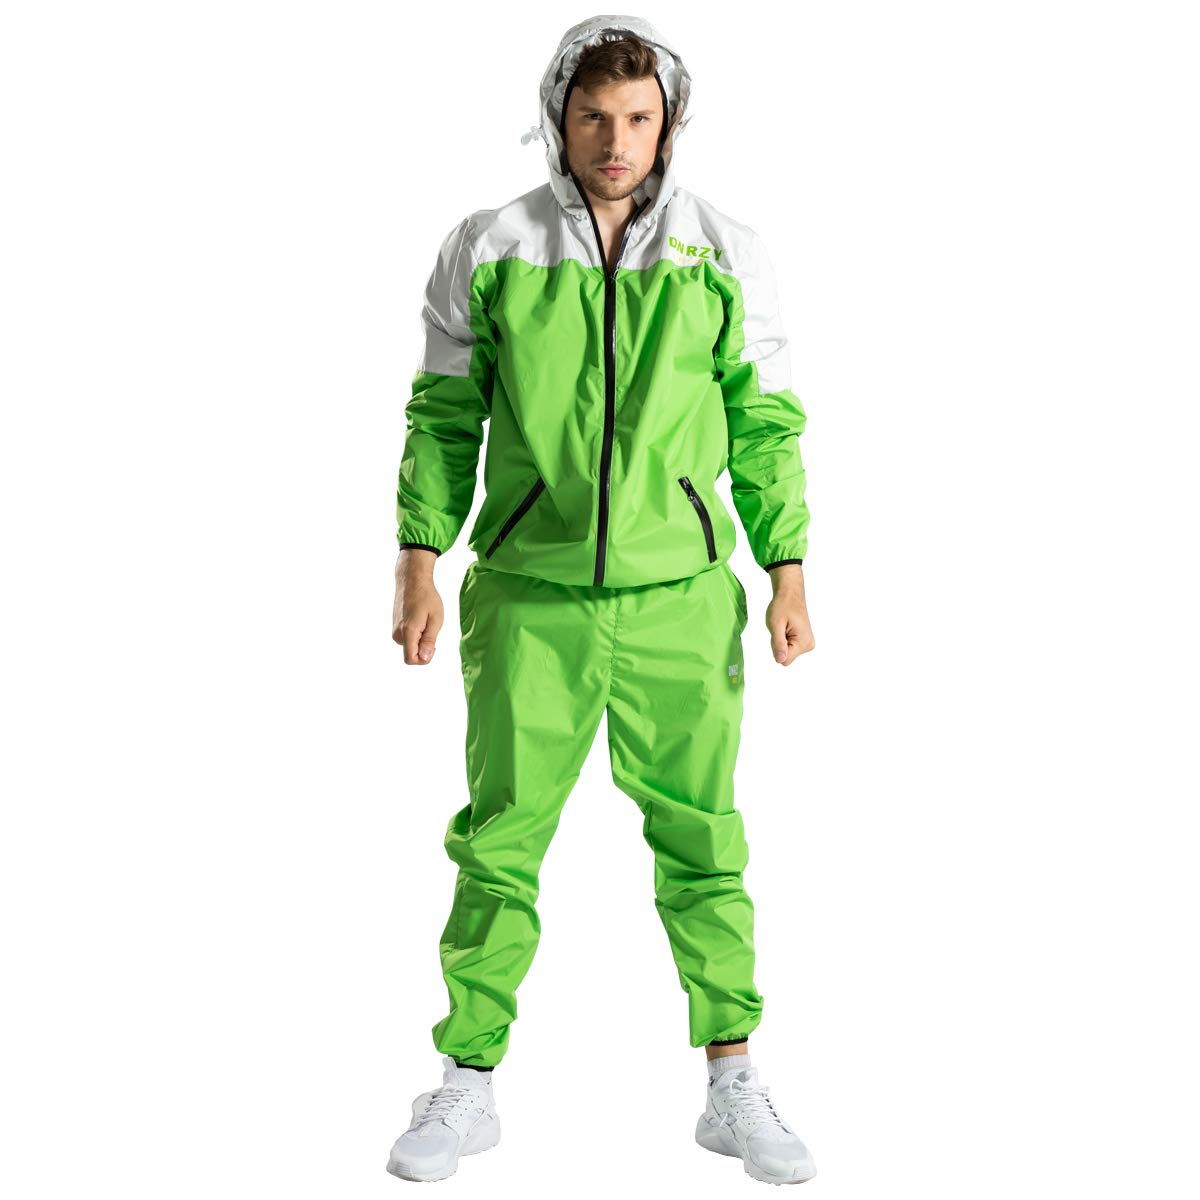 DNRZY Sauna Sweat Suits Men for Weight Lose Slimming Running Sport Suits Fat Burner Sweat Workout Clothes Fitness Durable Hooded Jacket Gym Training, 2XL by DNRZY (Image #1)